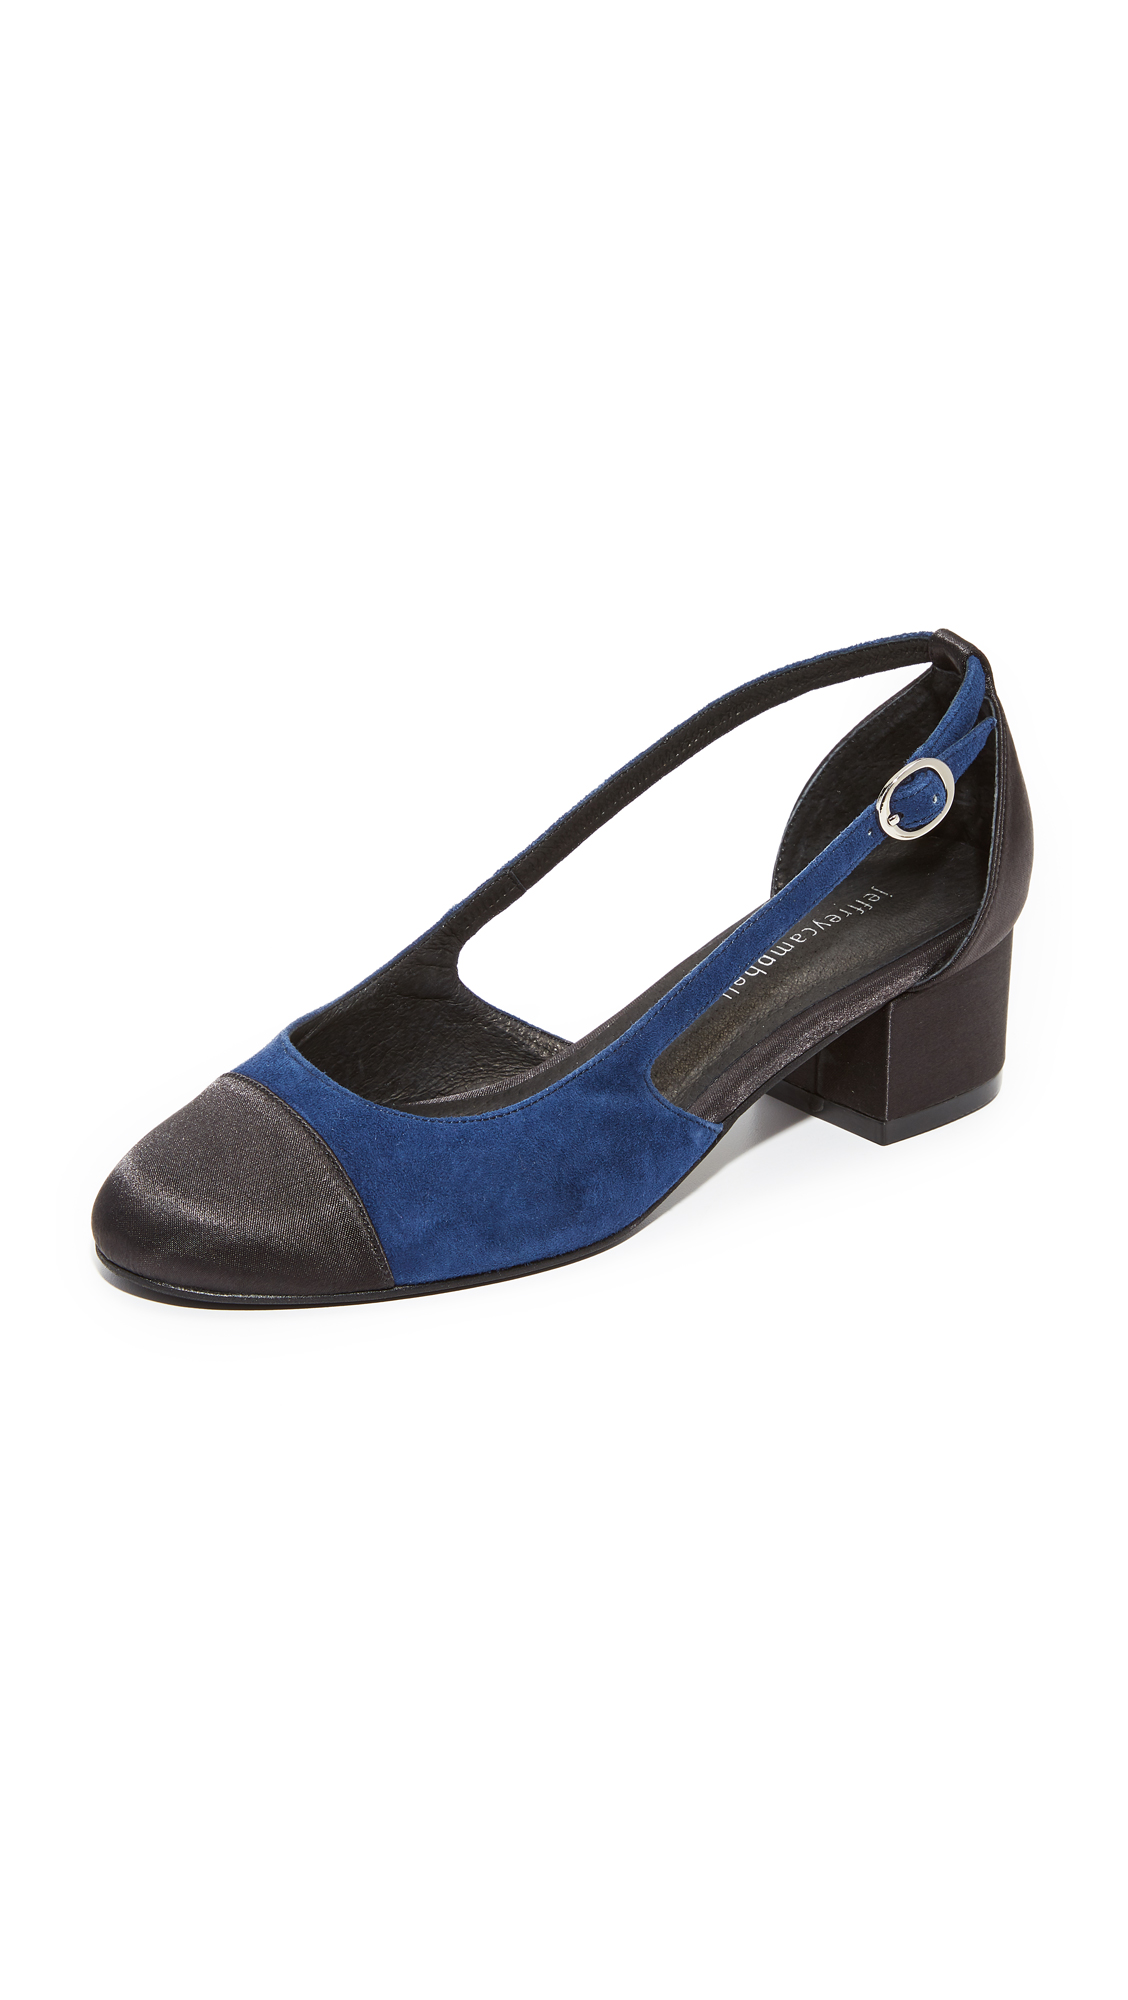 Jeffrey Campbell Tulloch Pumps - Black/Navy